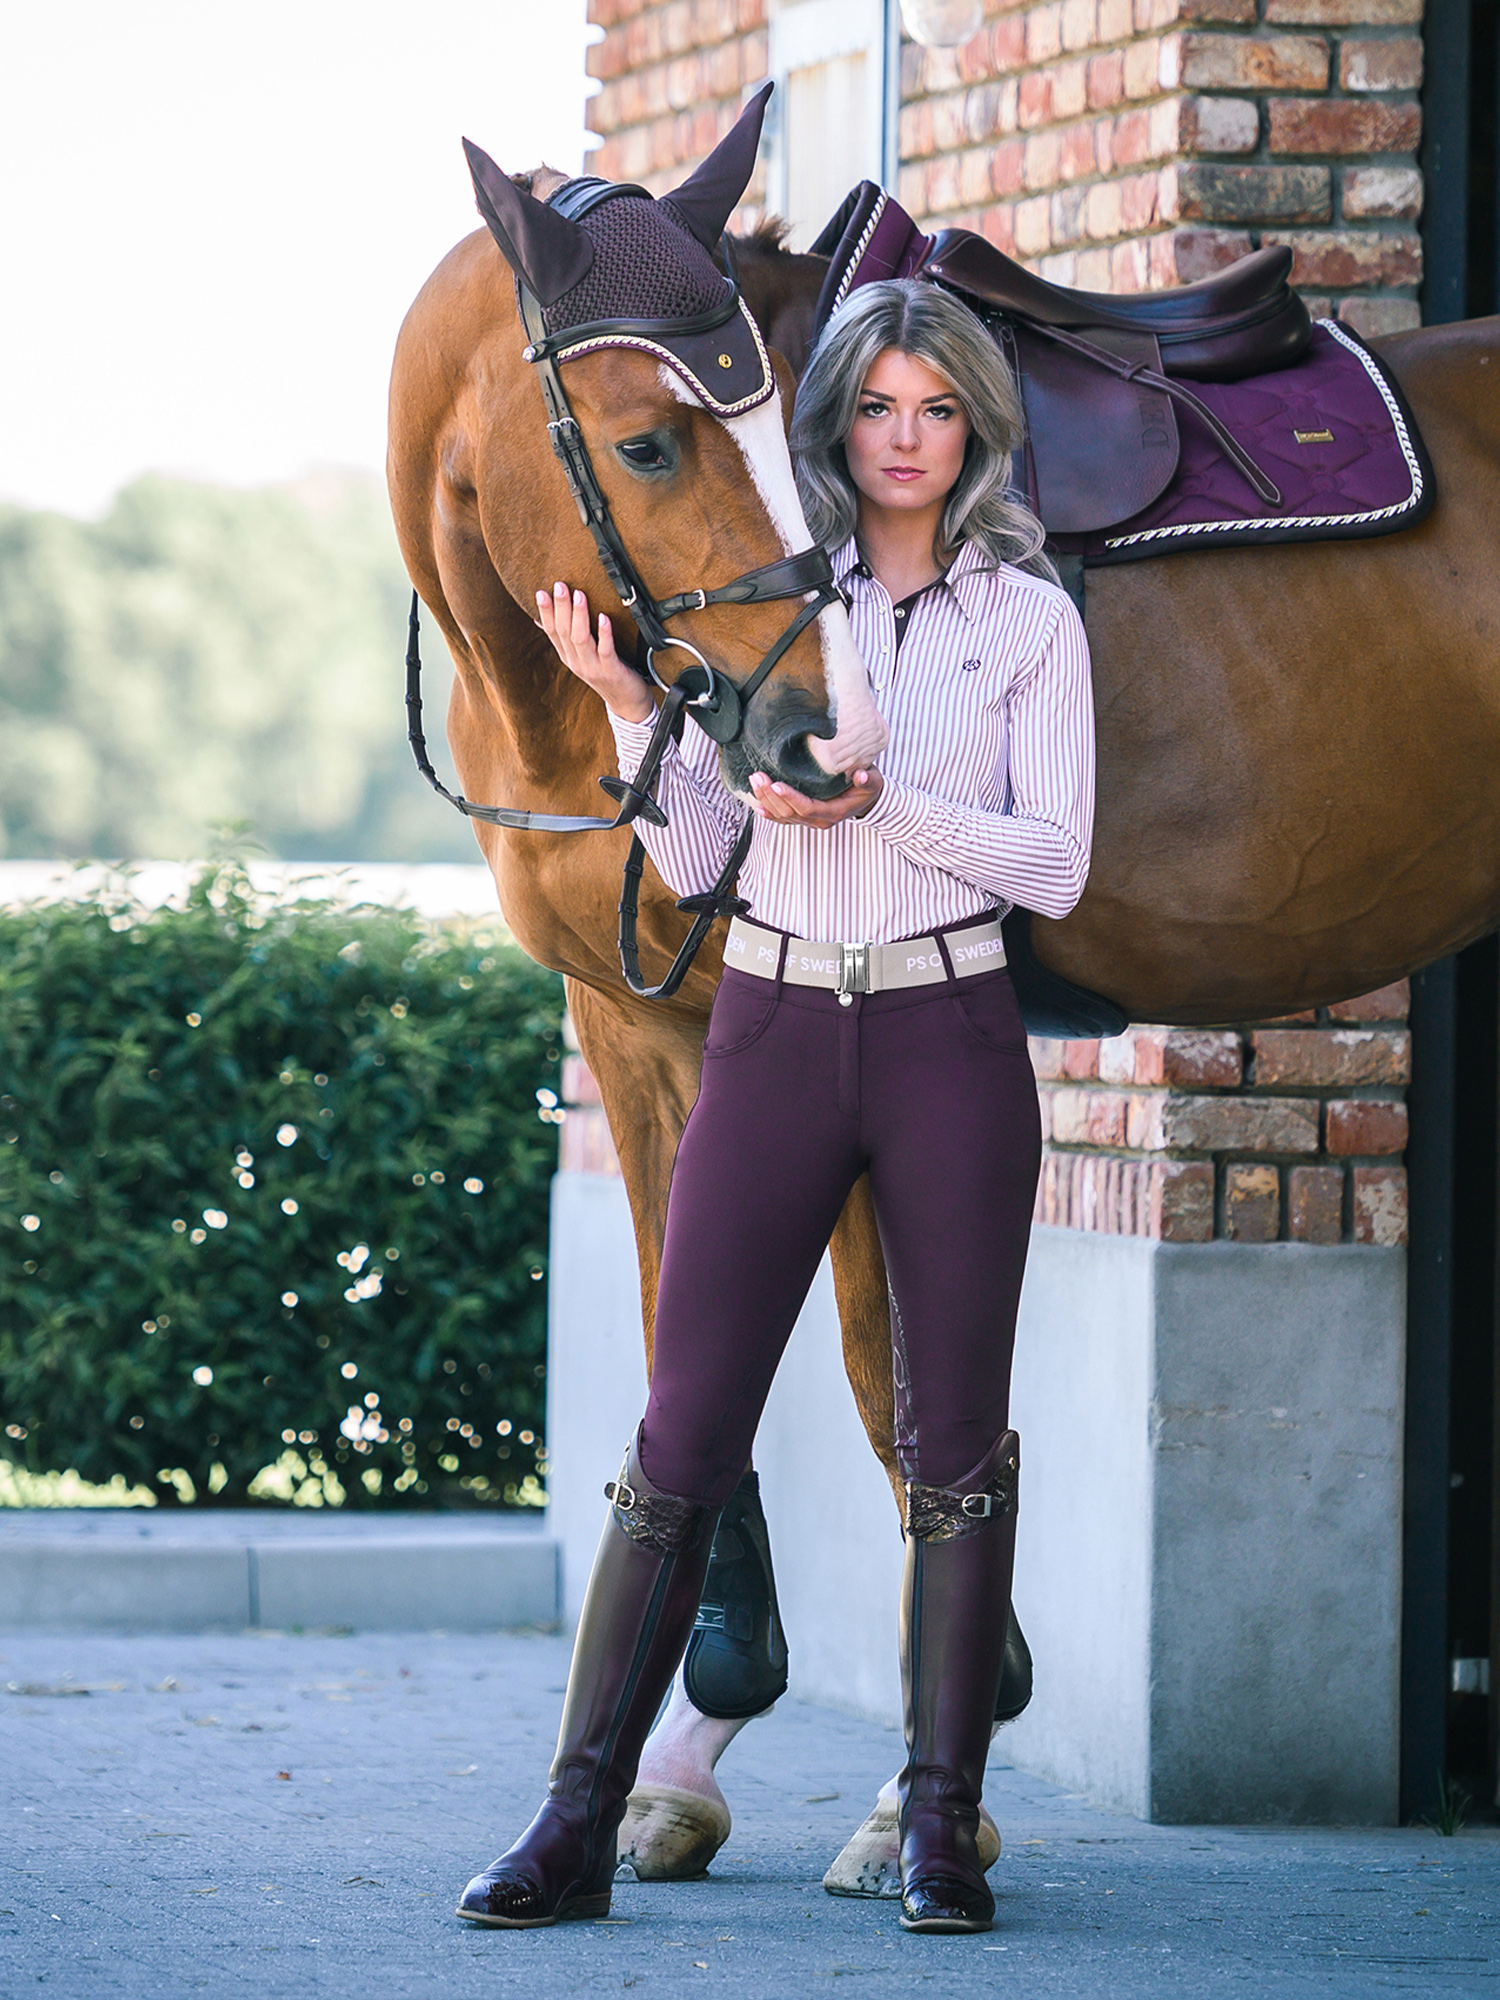 Jump Saddle Pad Size Full Anatomically Shaped In A Burgundy Color